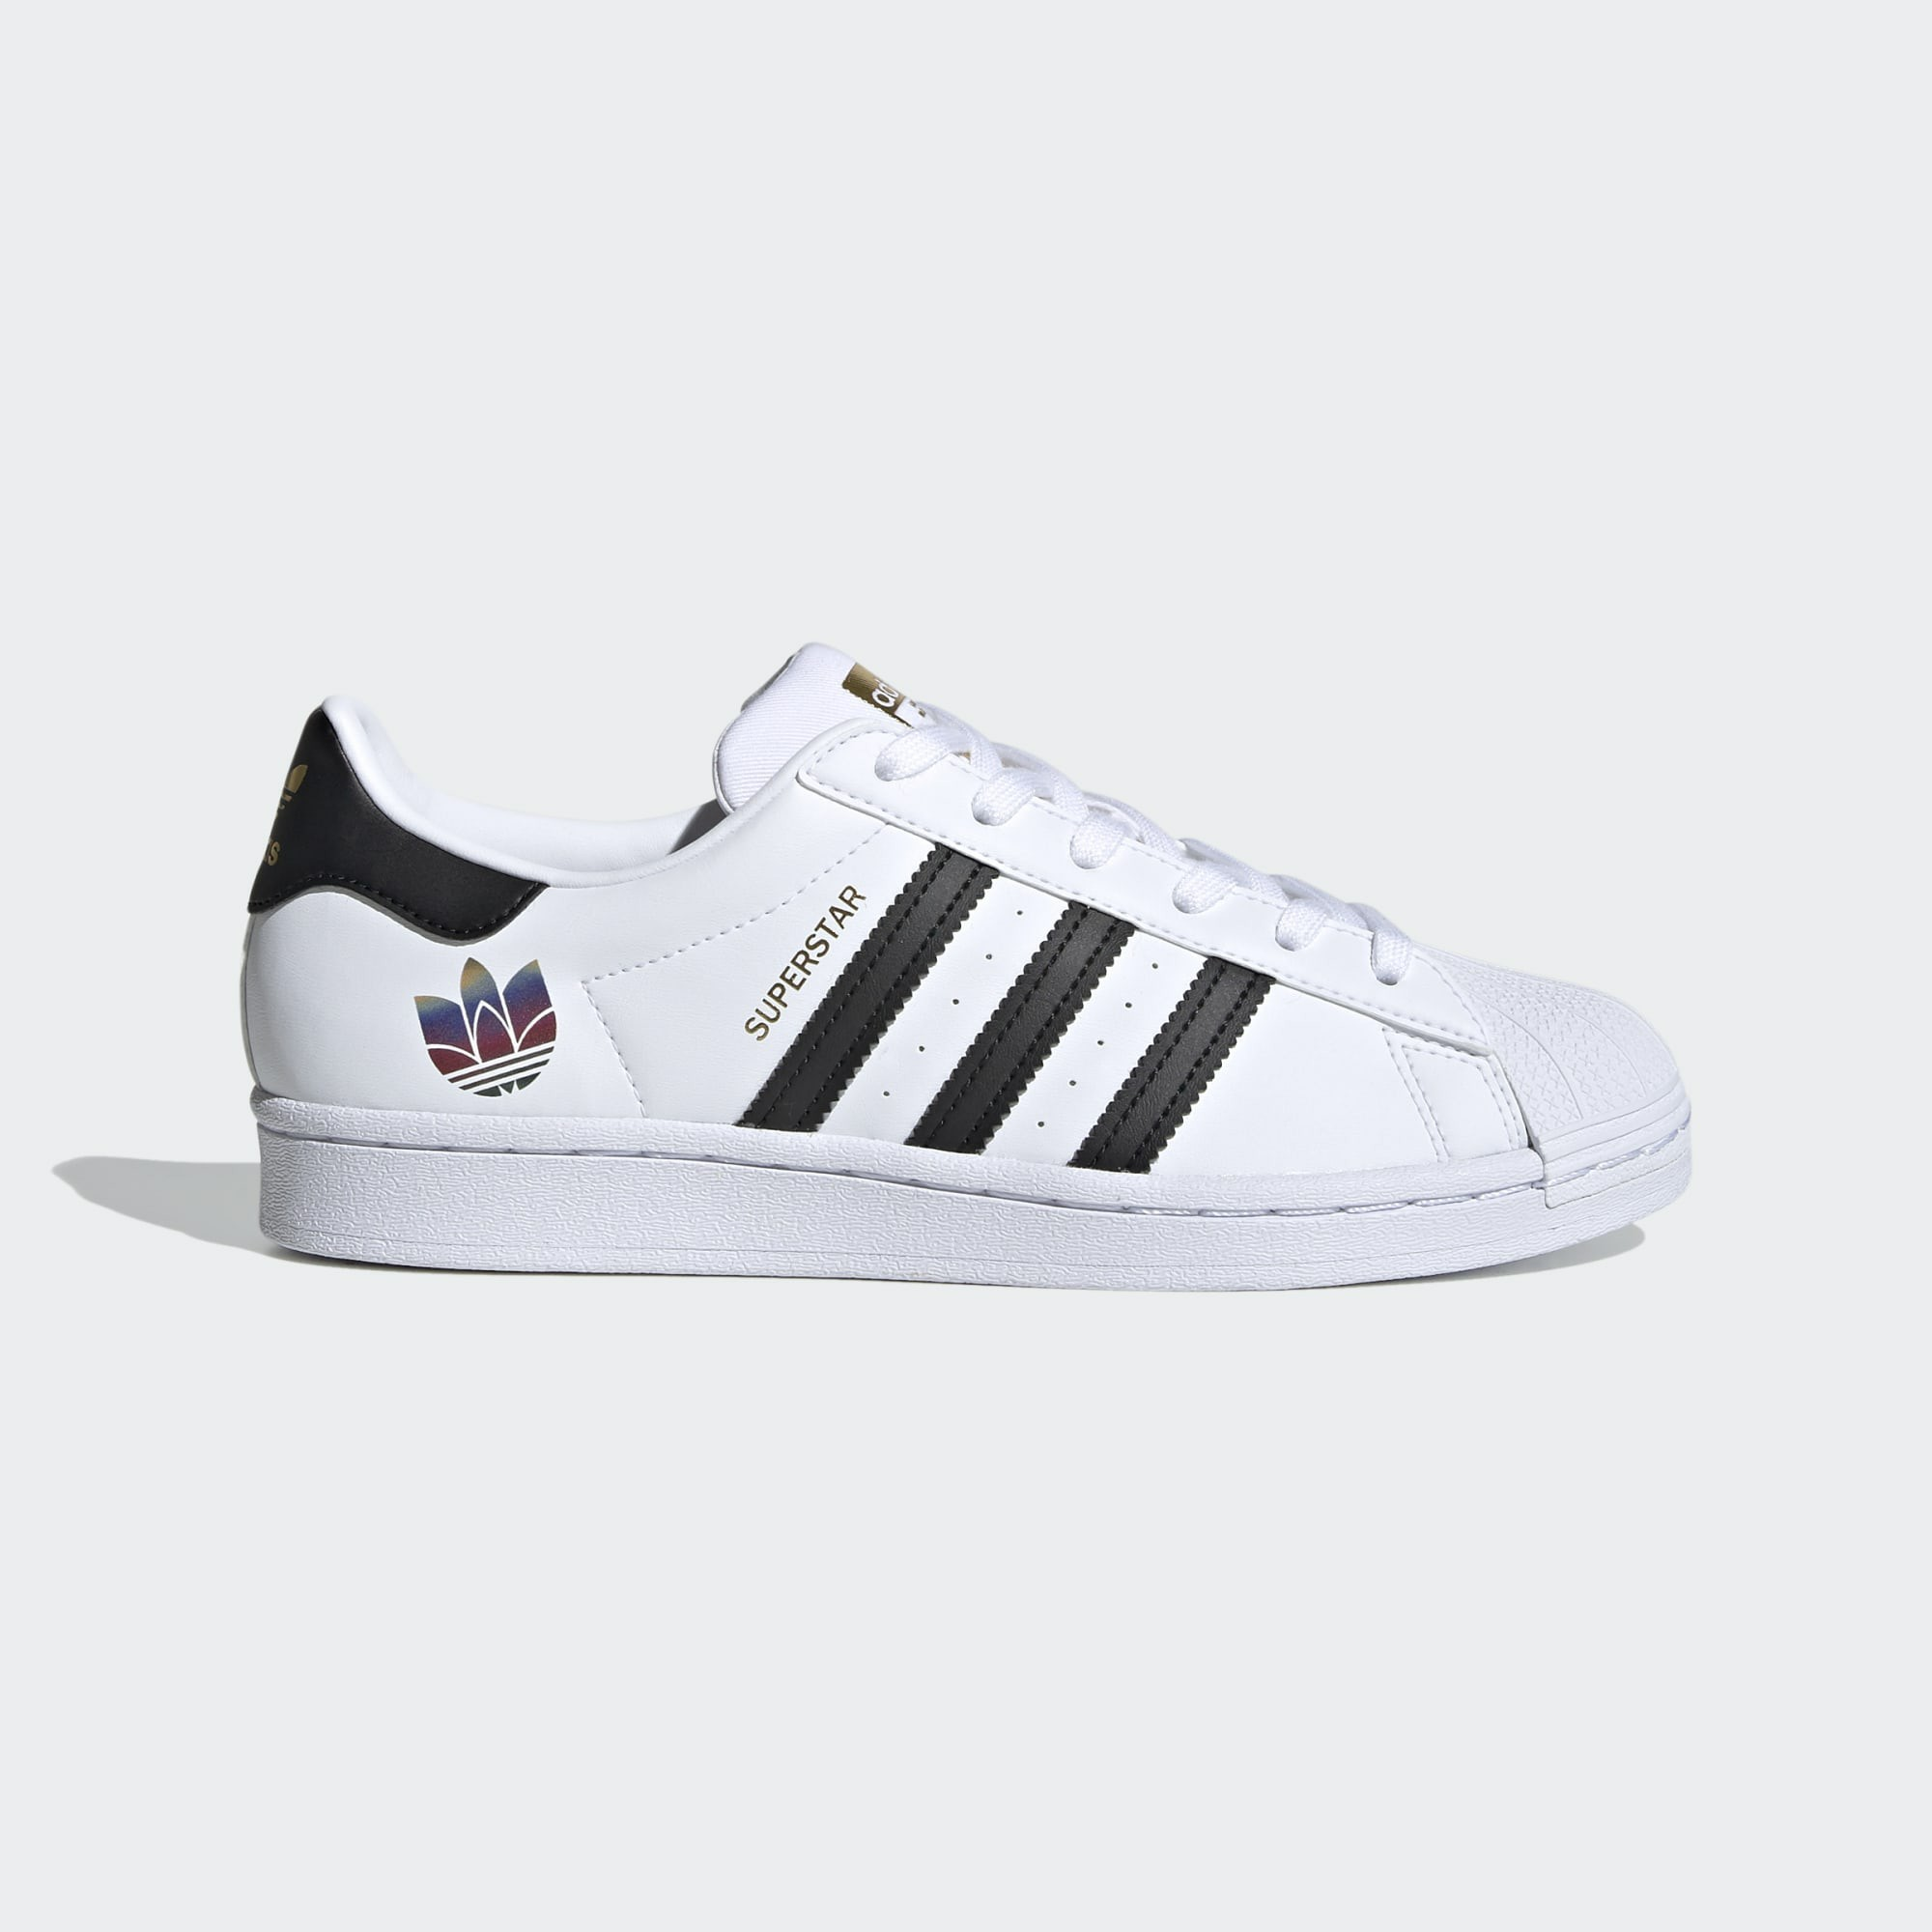 Adidas Superstar FX8543 White/Black/Gold Metallic